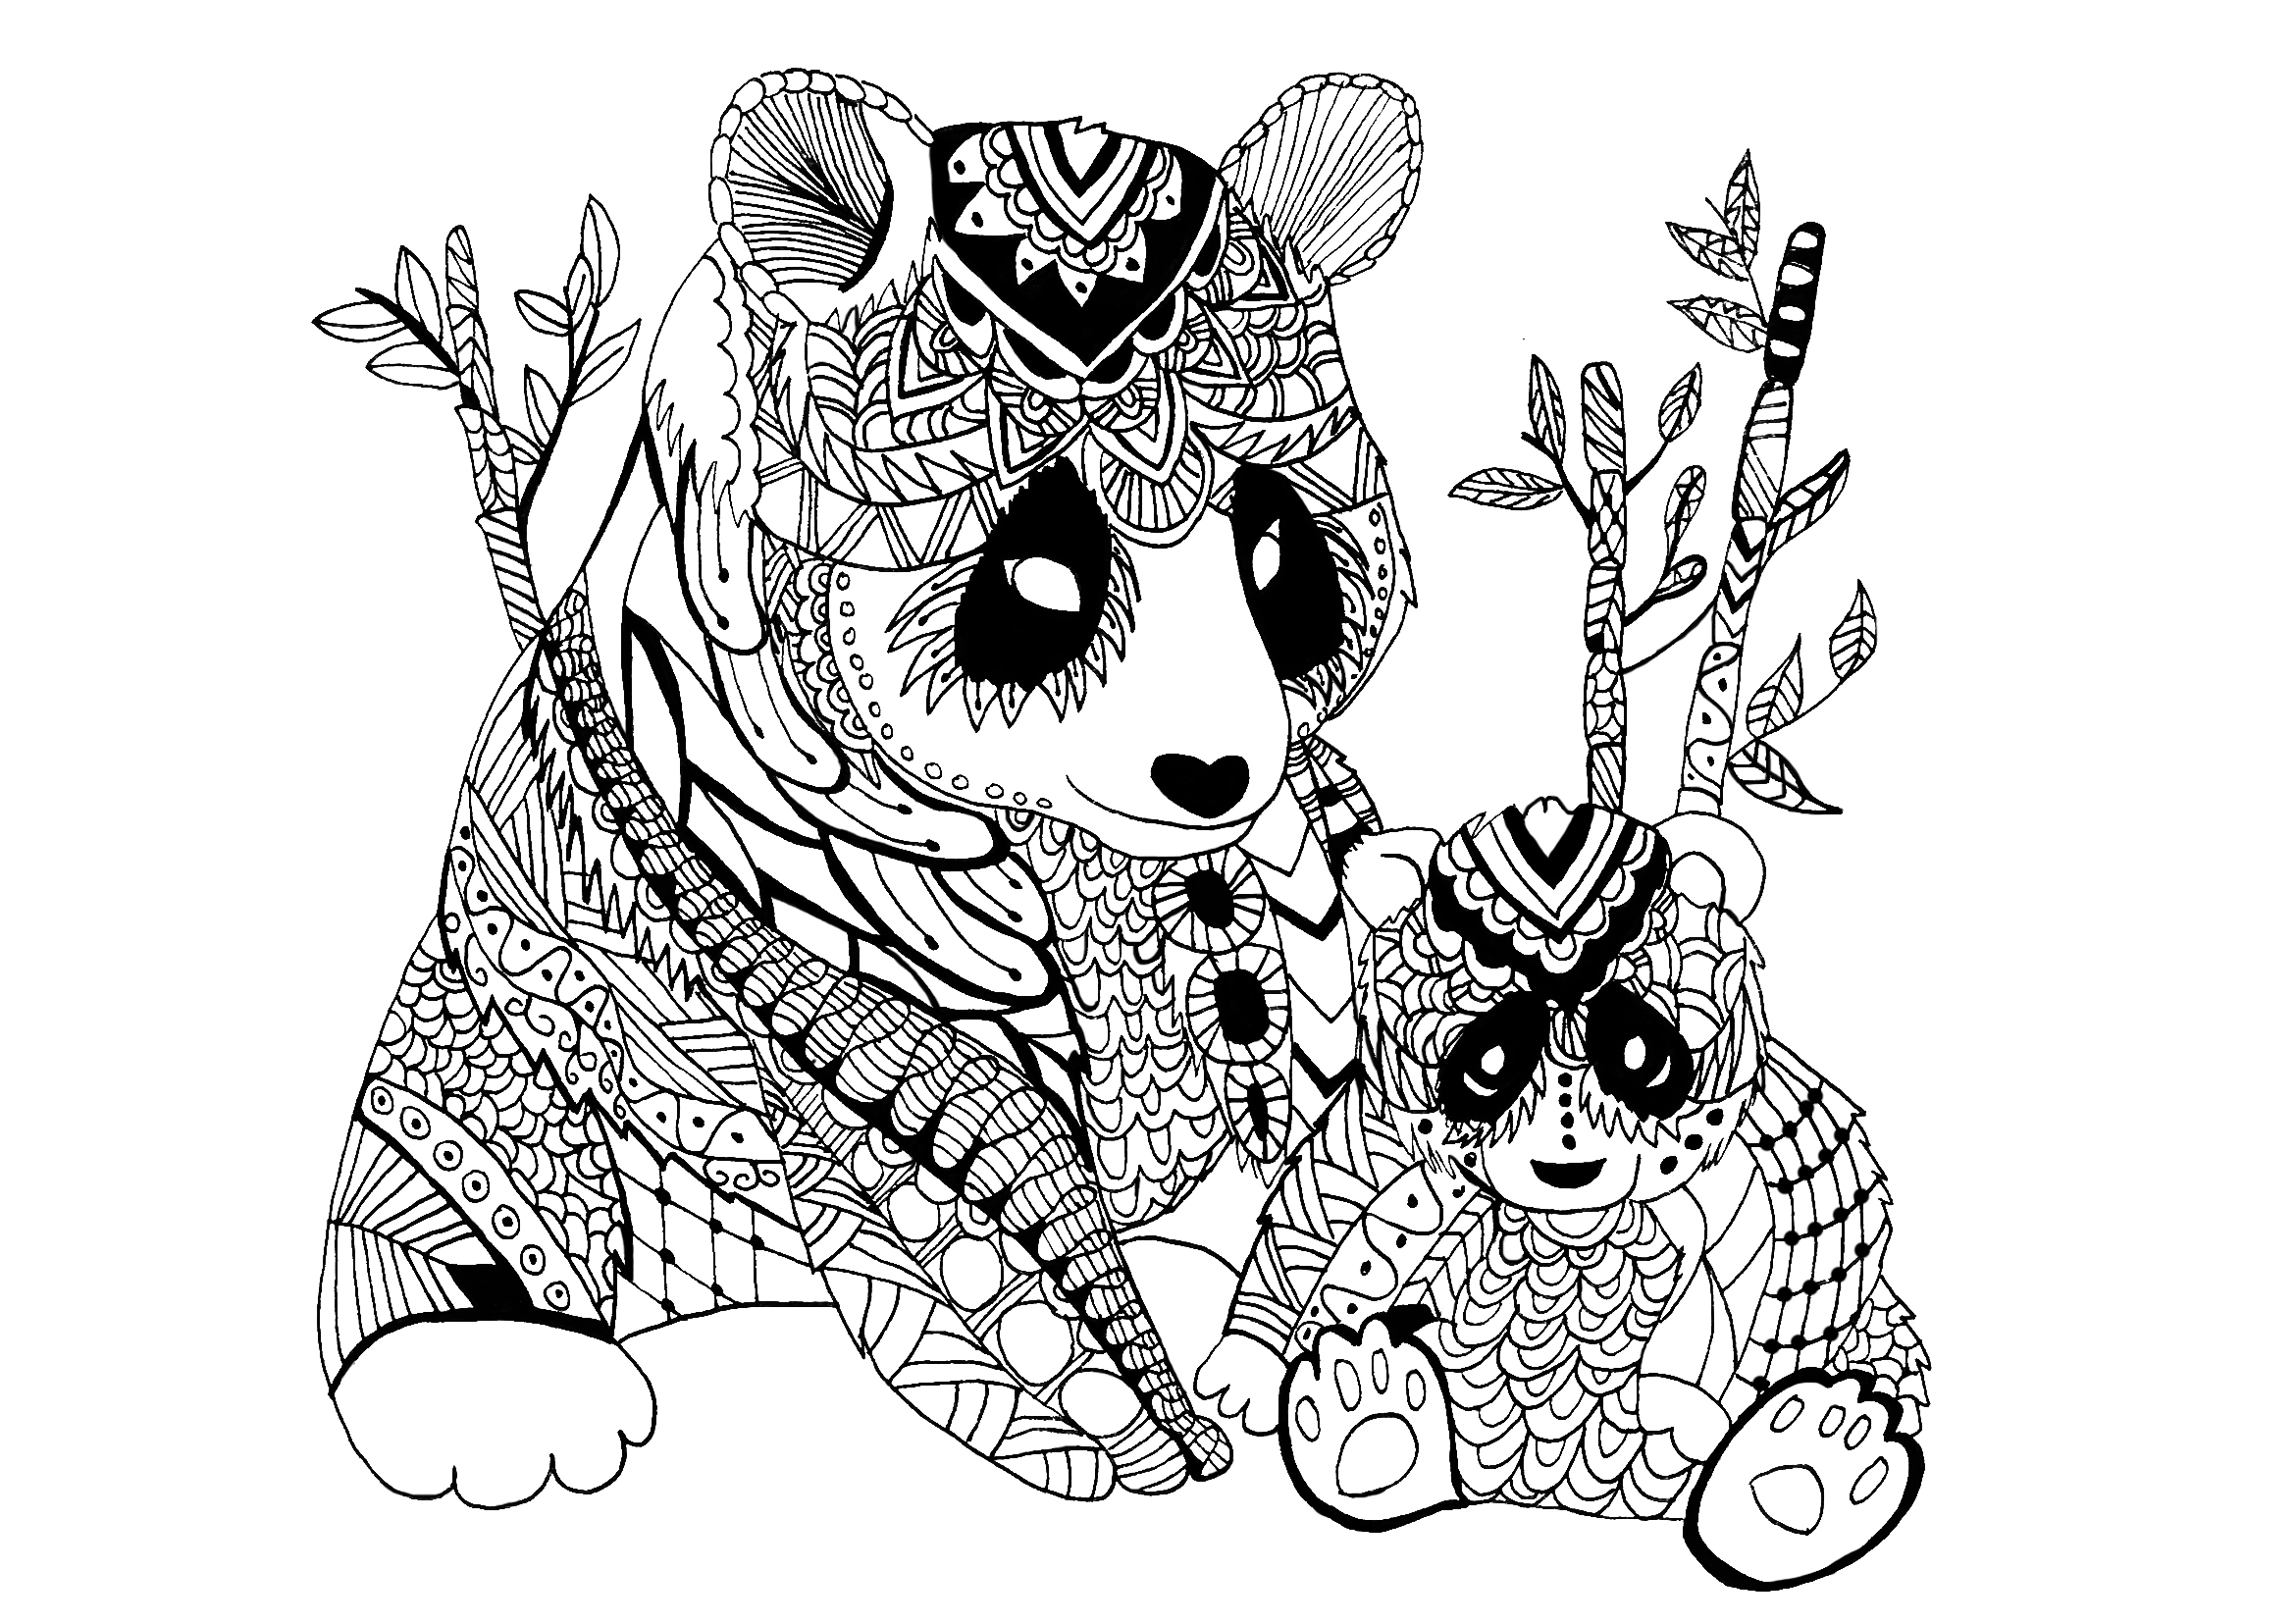 panda zentangle celine zentangle coloring pages for adults zentangle coloring pages pdf free coloring pages zentangle